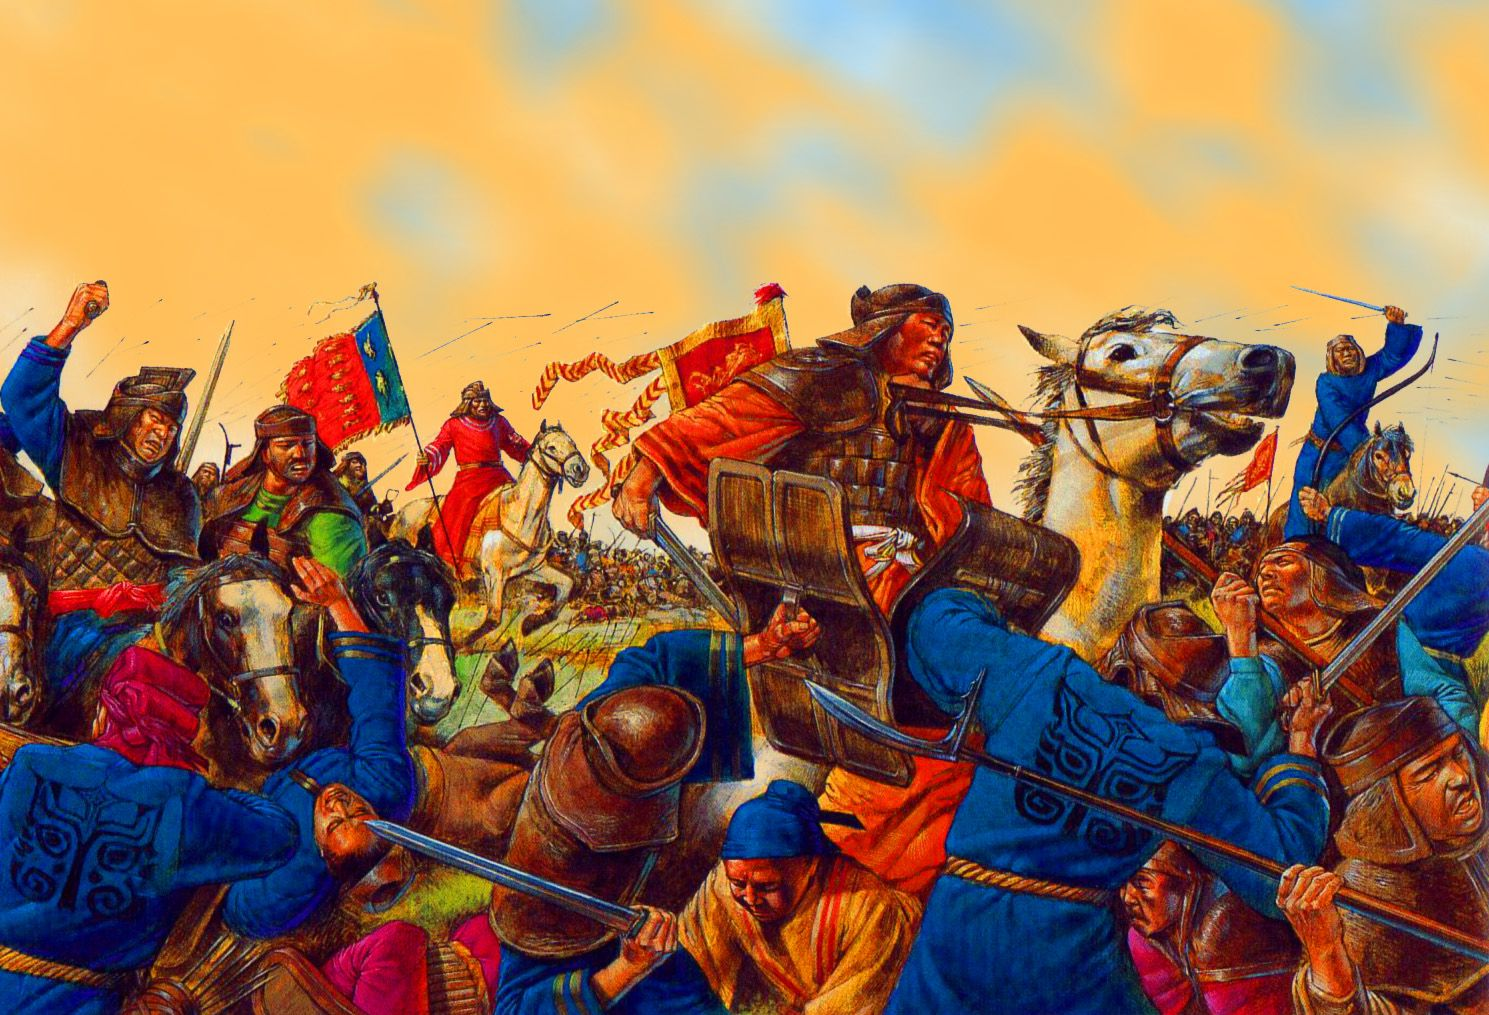 Chinese Sol Rs Of The Han Dynasty Engage In Battle